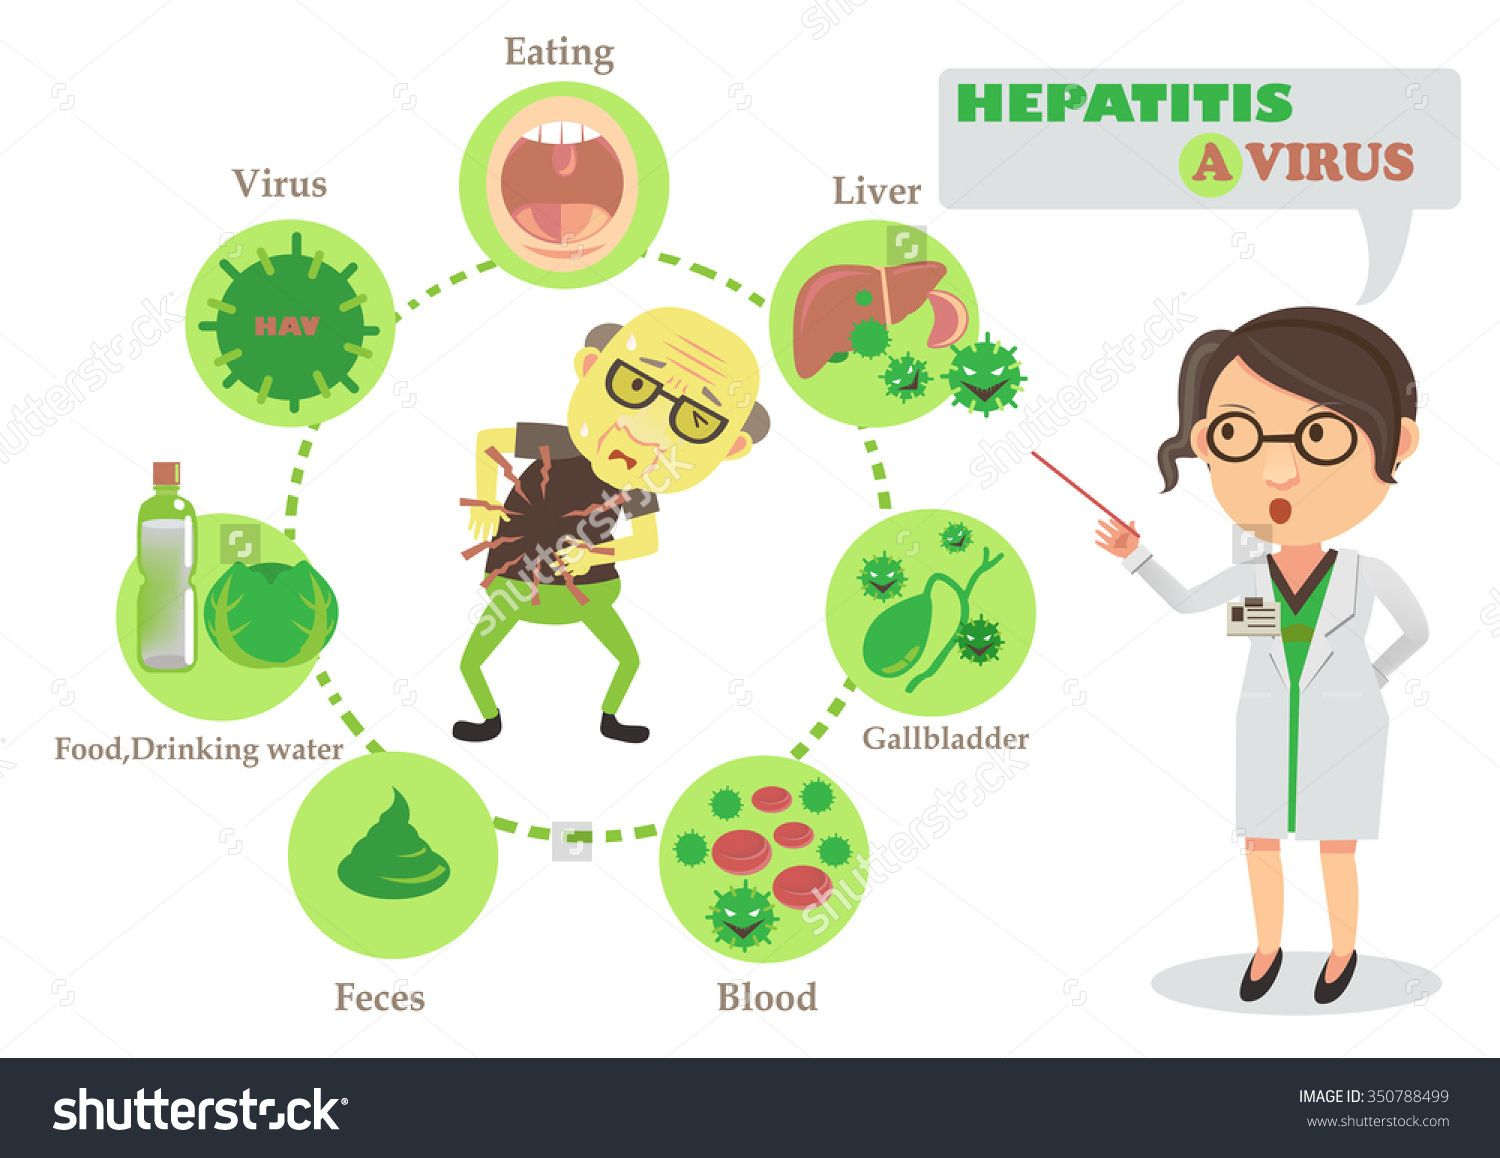 Image result for hepatitis a cartoon | INFECTIONS ... - photo#40